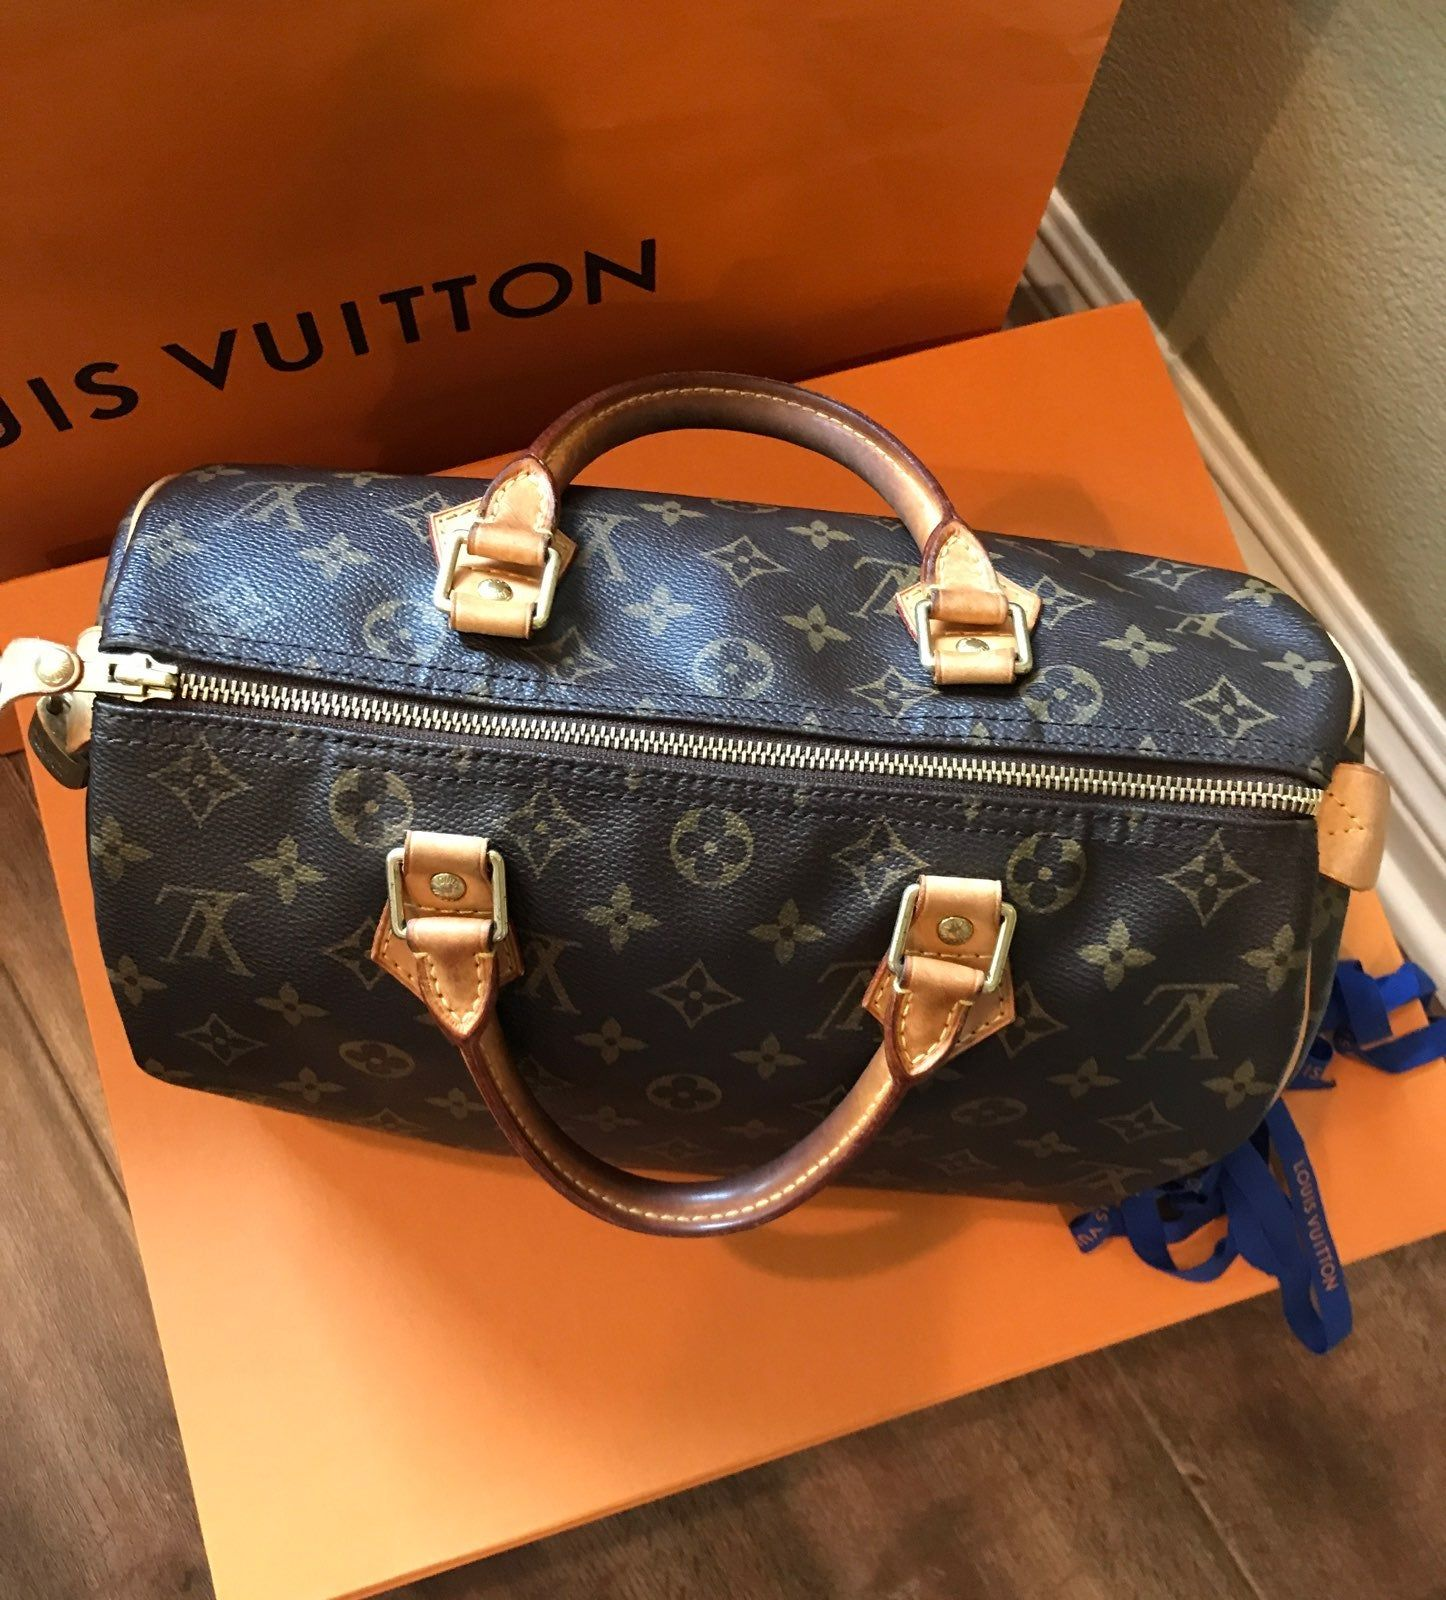 Preowned Preloved Authentic Lv Speedy In Great Condition Canvas Piping Zipper Leather All In Good C Fashion Tote Bag Louis Vuitton Handbags Louis Vuitton